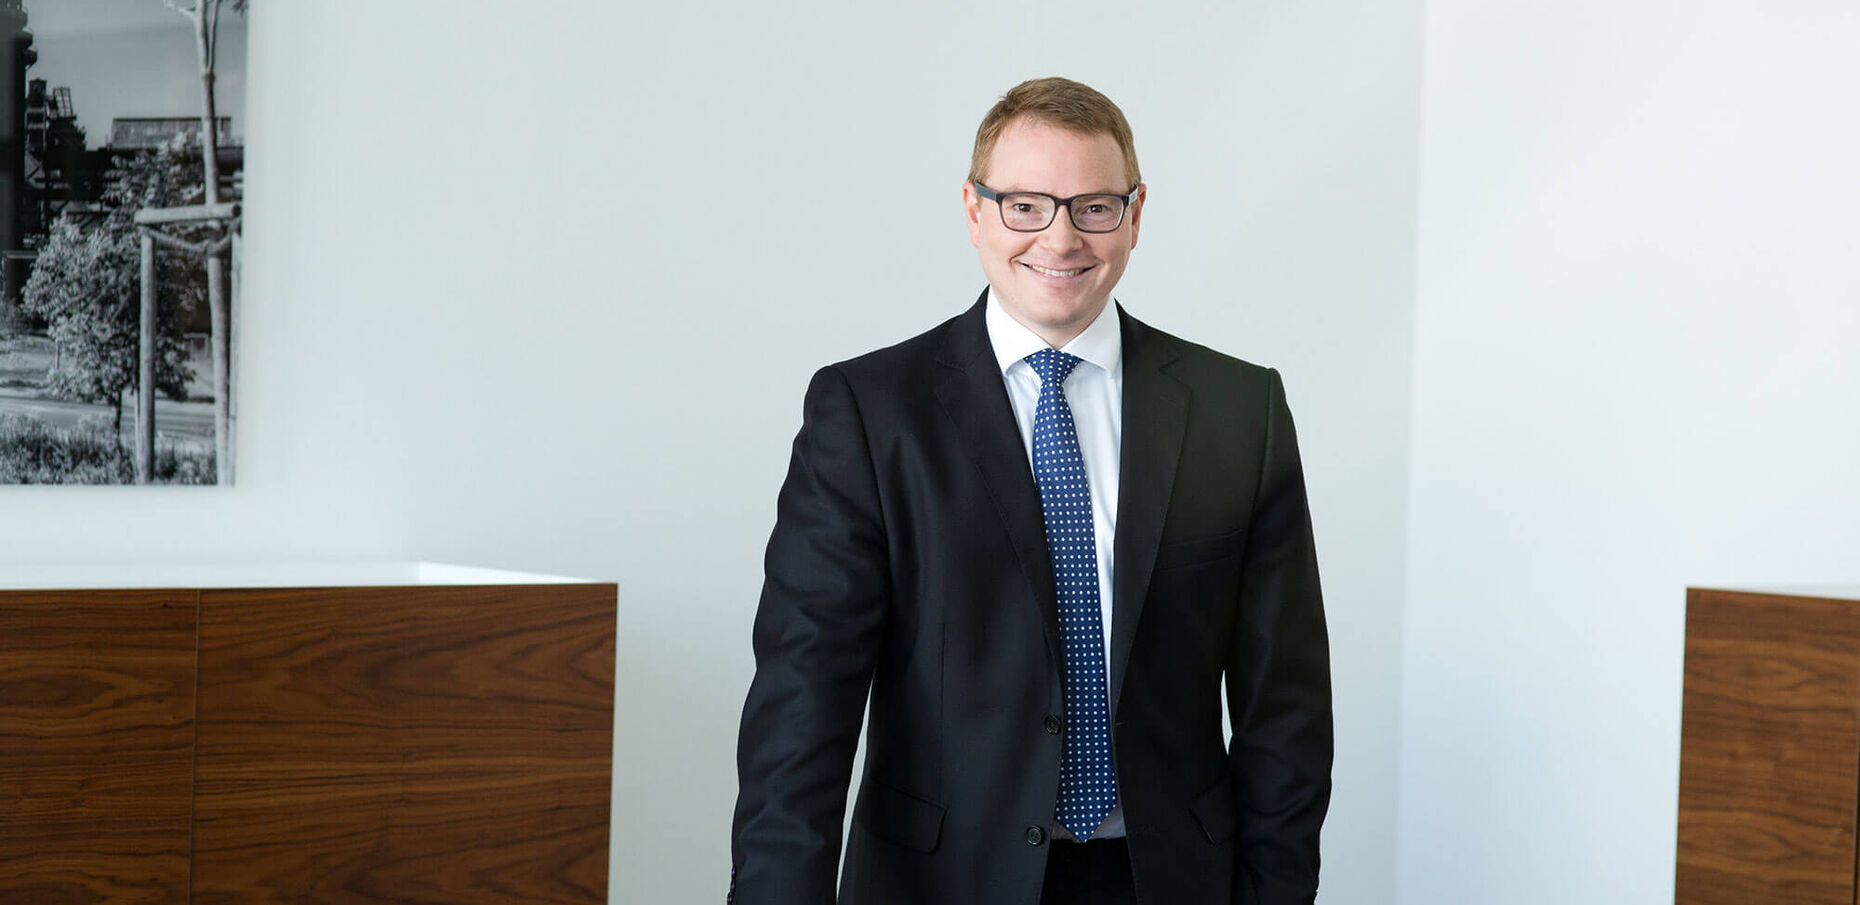 Dr. Tobias Eggers - Lawyer | Partner, Specialist lawyer for criminal law, Visiting lecturer at the University of Osnabrück